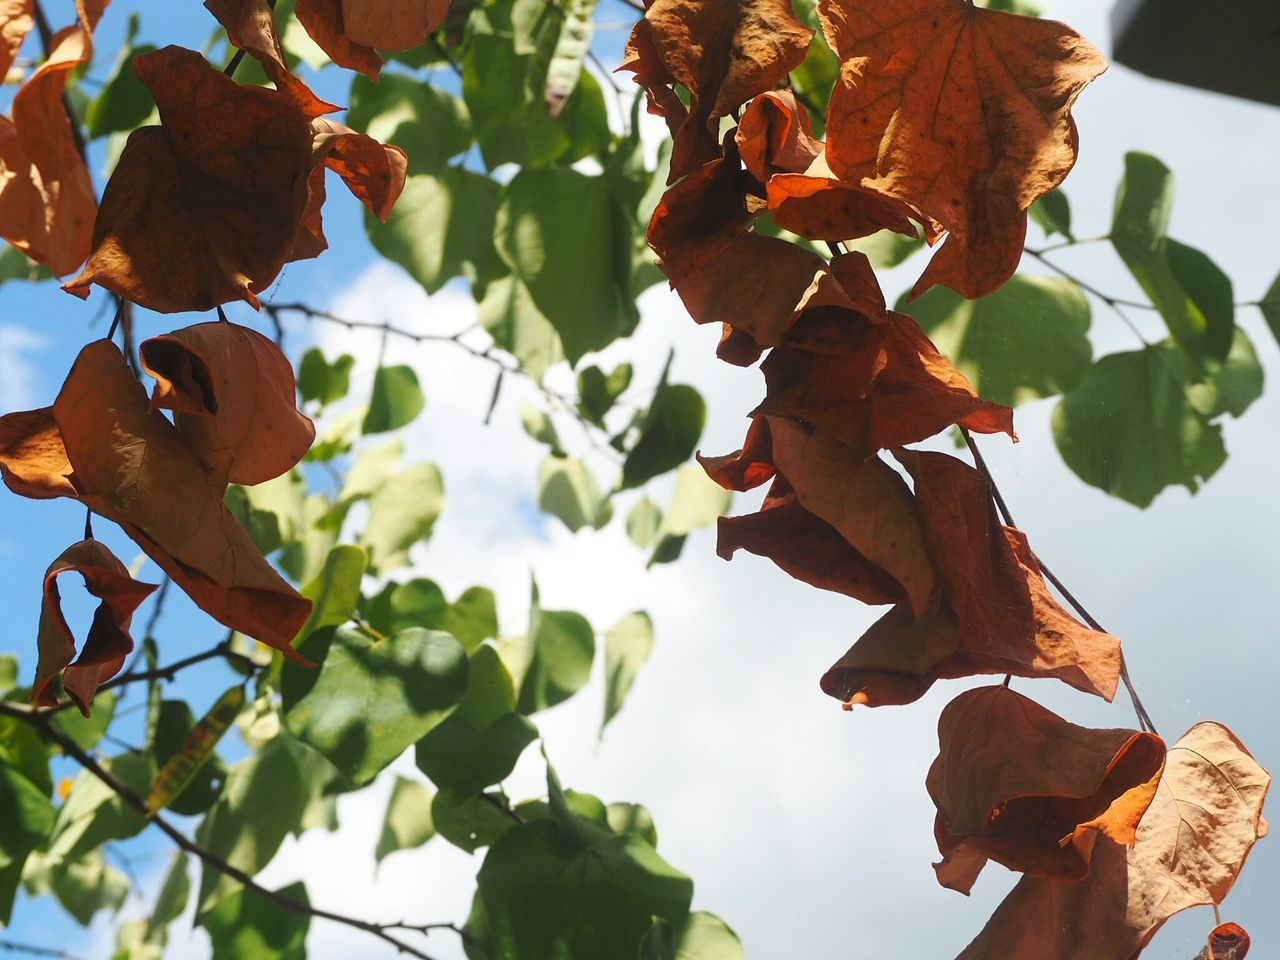 leaf, nature, growth, low angle view, beauty in nature, day, outdoors, no people, autumn, plant, tree, branch, close-up, freshness, sky